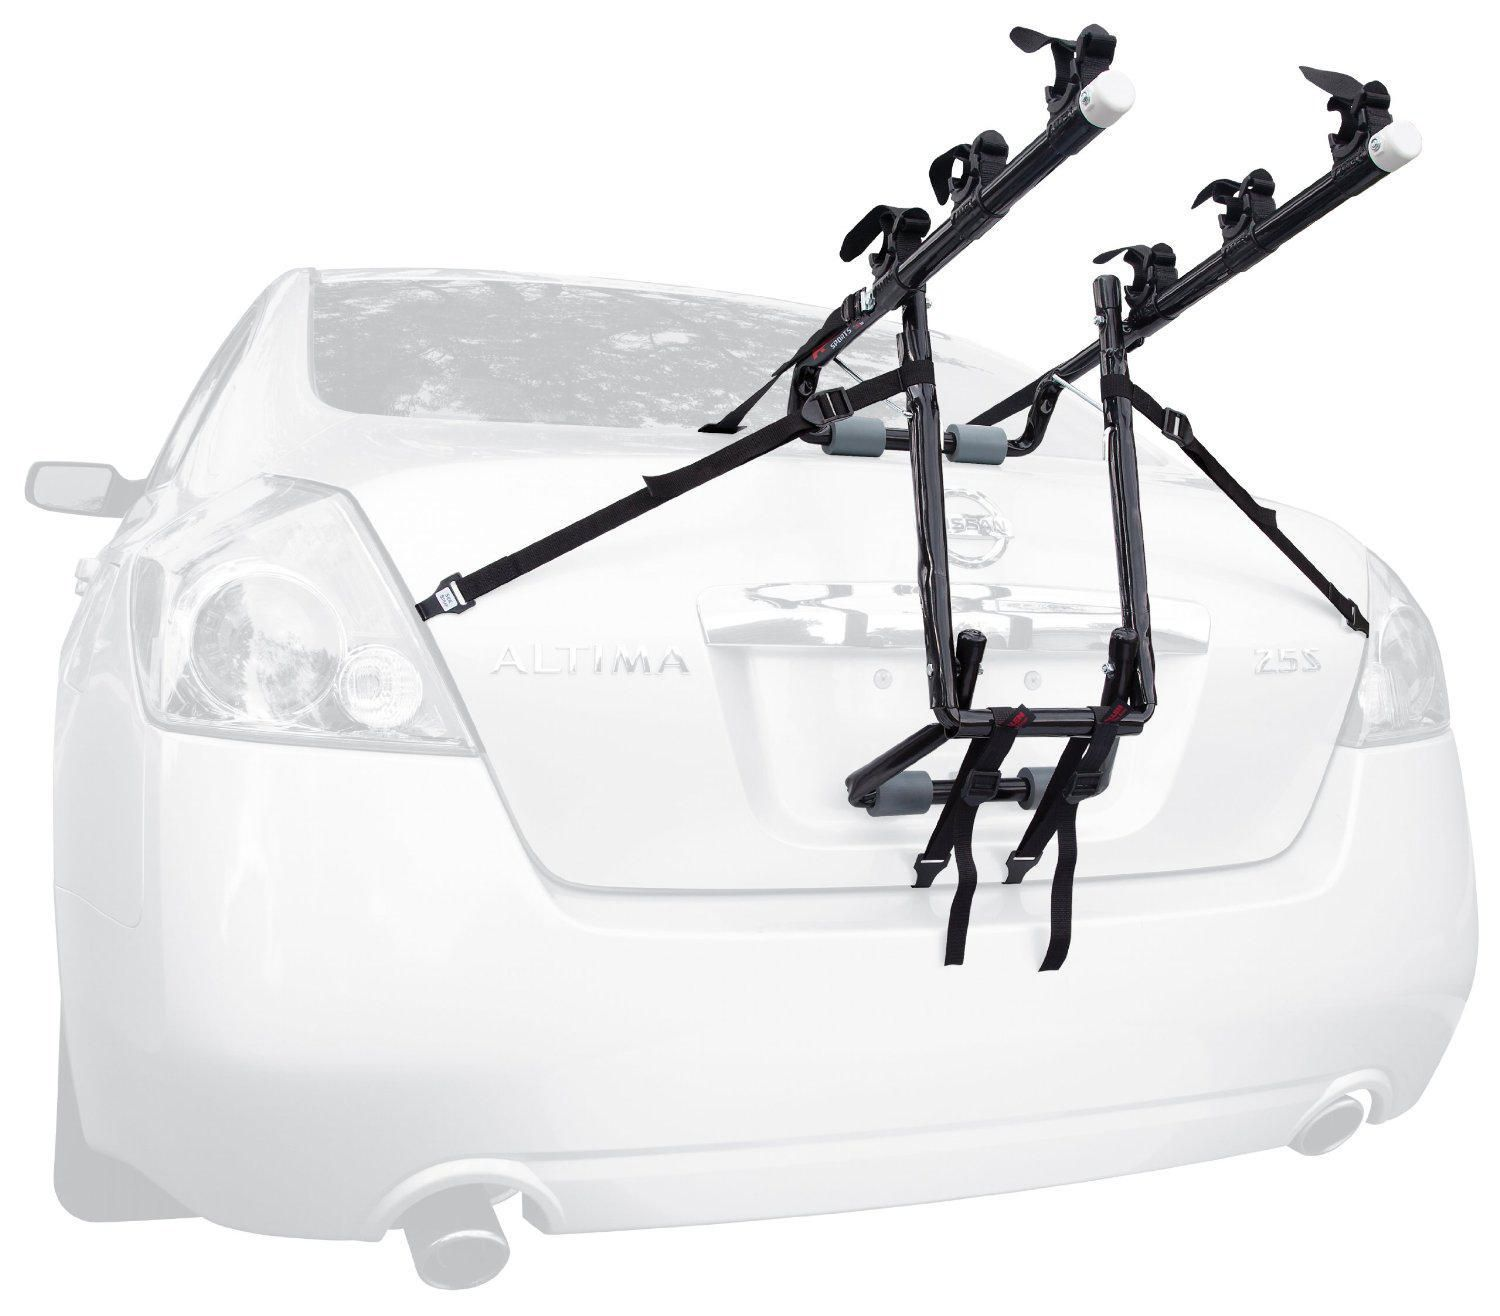 hatchback fits car bike carrier saloon rack for bicycle itm afea estate universal holder